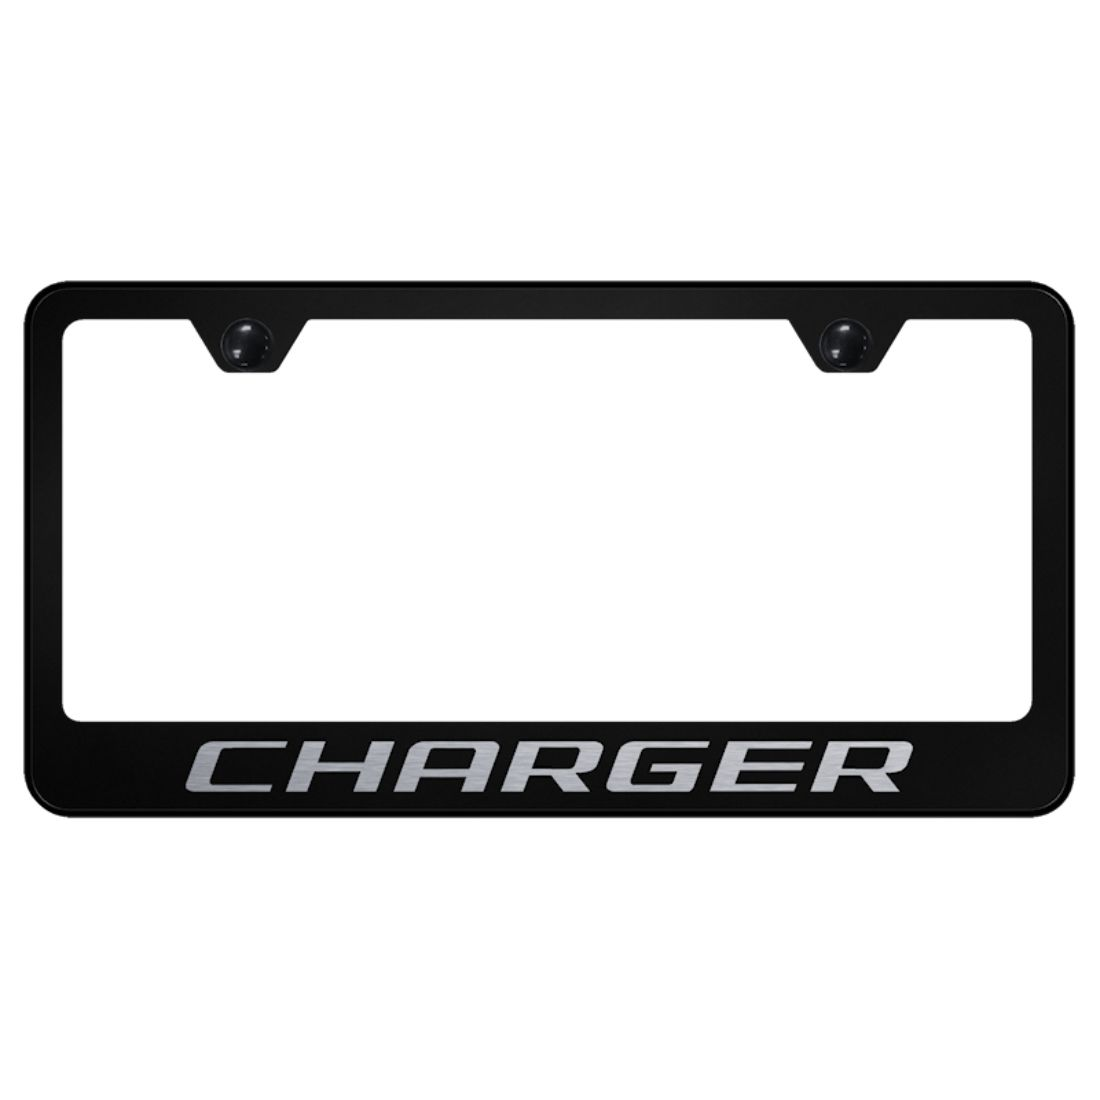 Dodge Charger Black Stainless Steel License Plate Frame